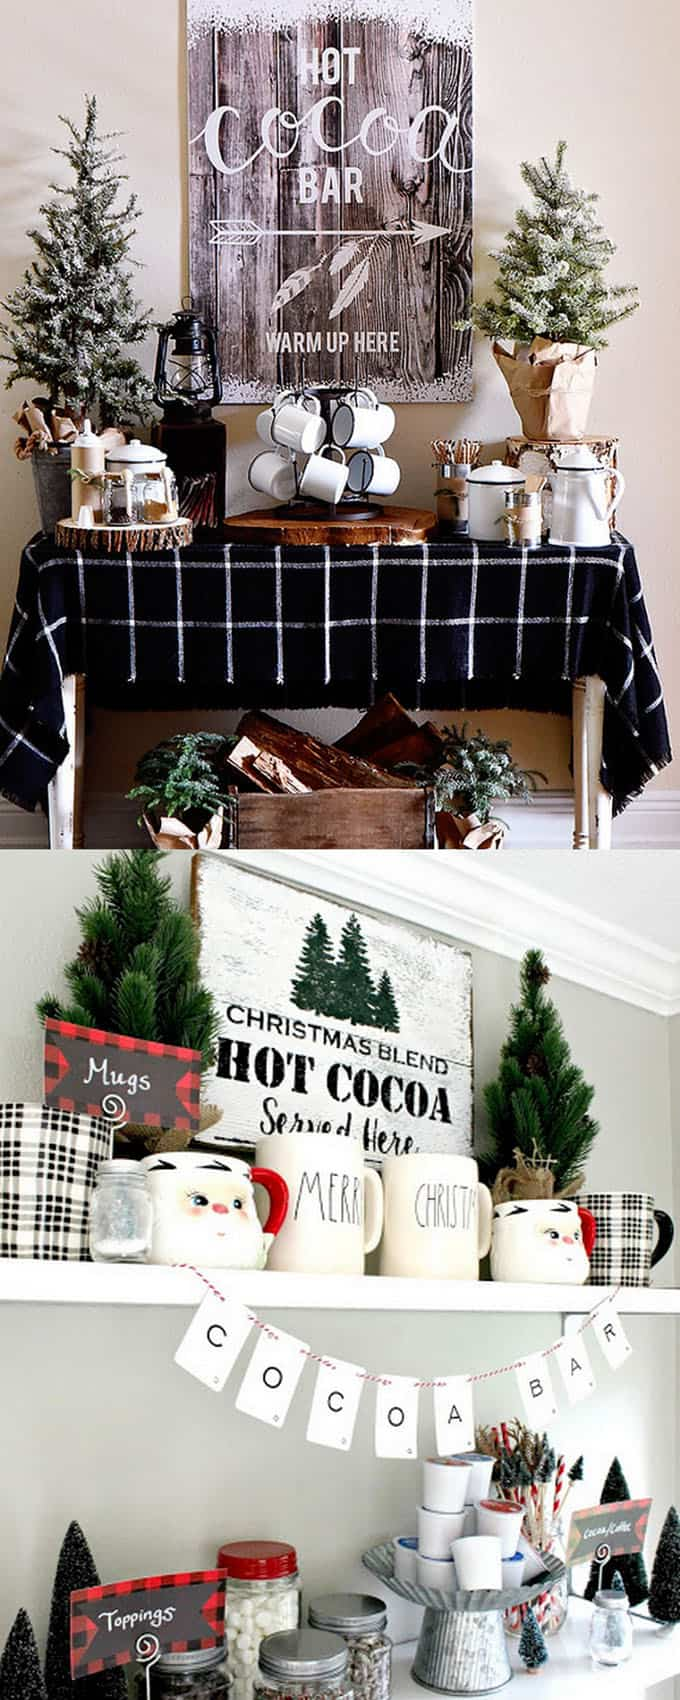 100 favorite christmas decorating ideas every room apieceofrainbow 7 - 100+ Favorite Christmas Decorating Ideas For Every Room in Your Home : Part 2